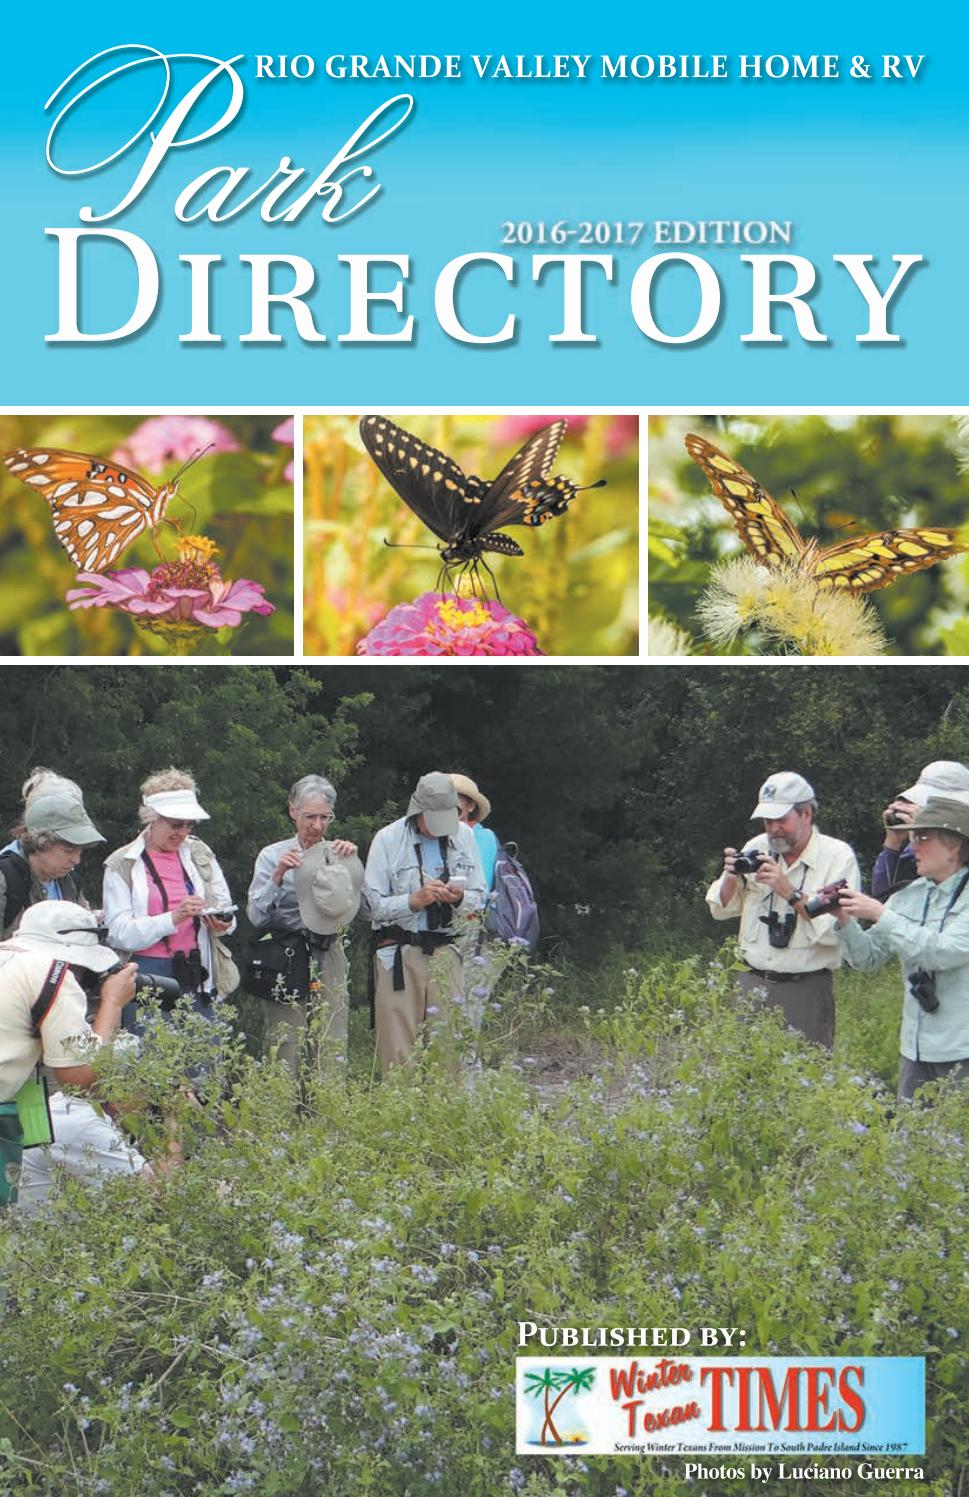 2016 Park Directory By Winter Texan Times